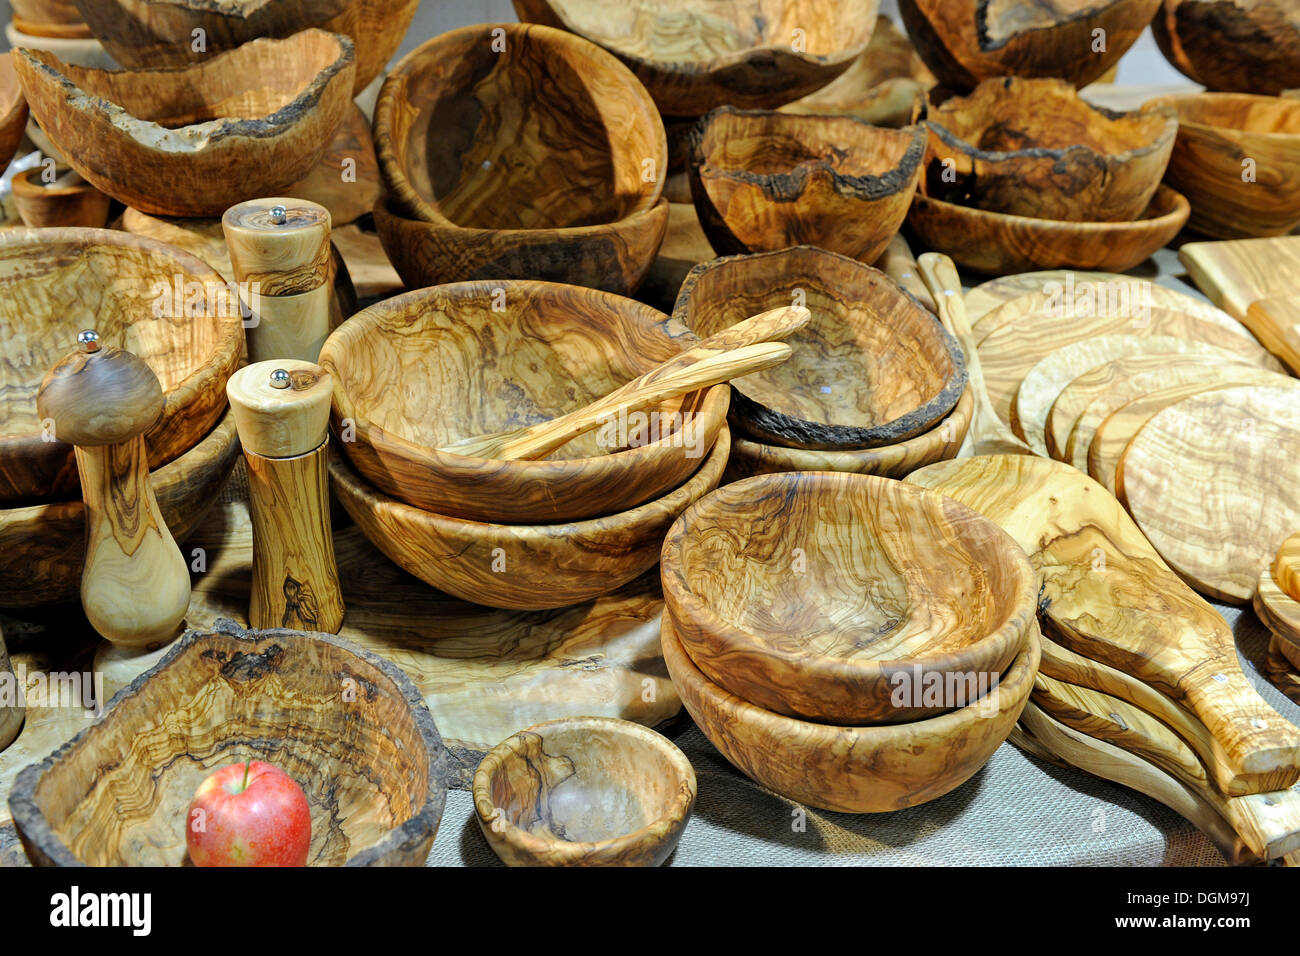 Various kitchen utensils made of olive wood - Stock Image